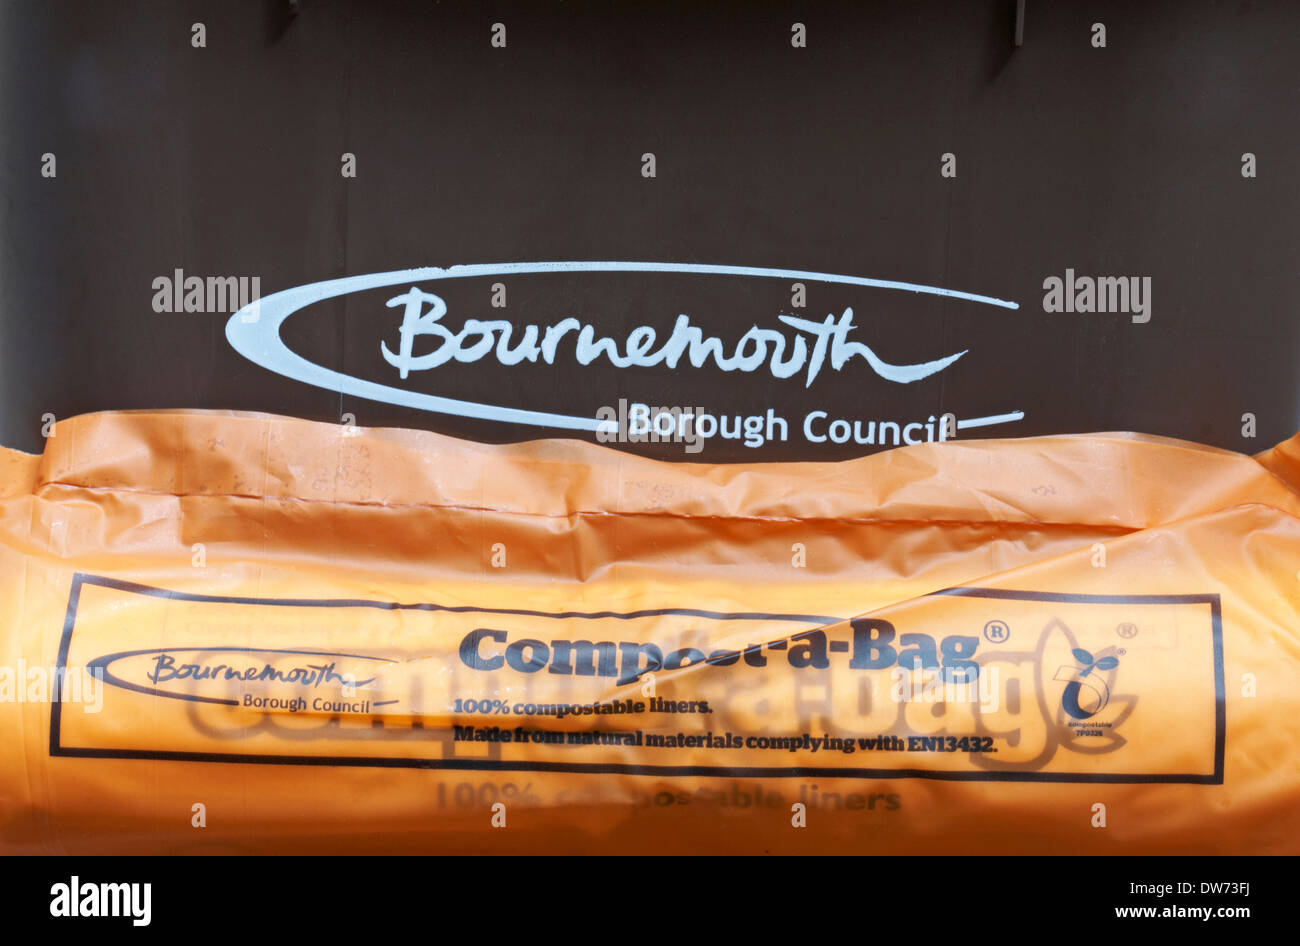 Bournemouth Borough Council food waste bin with compost-a-bag 100% compostable liners made from natural materials - Stock Image